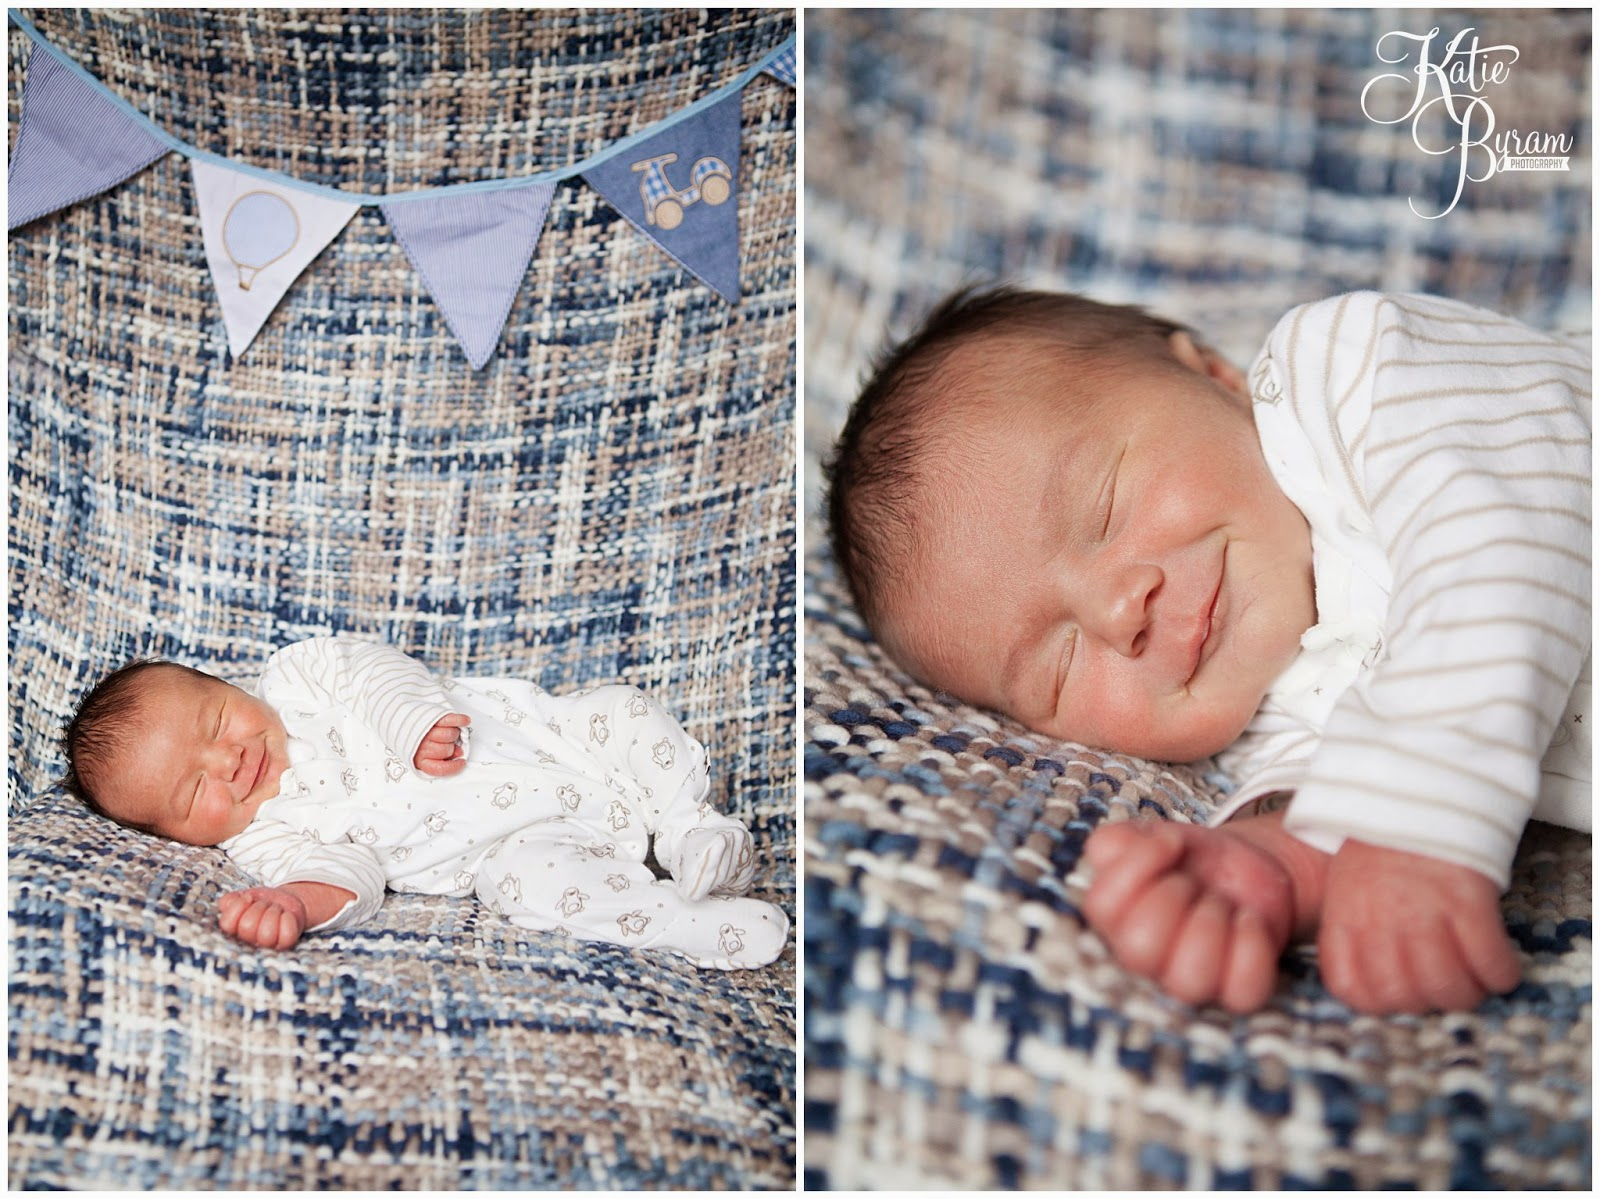 newborn photography, katie byram photography, baby photography, lifestyle photography, relaxed newborn photography